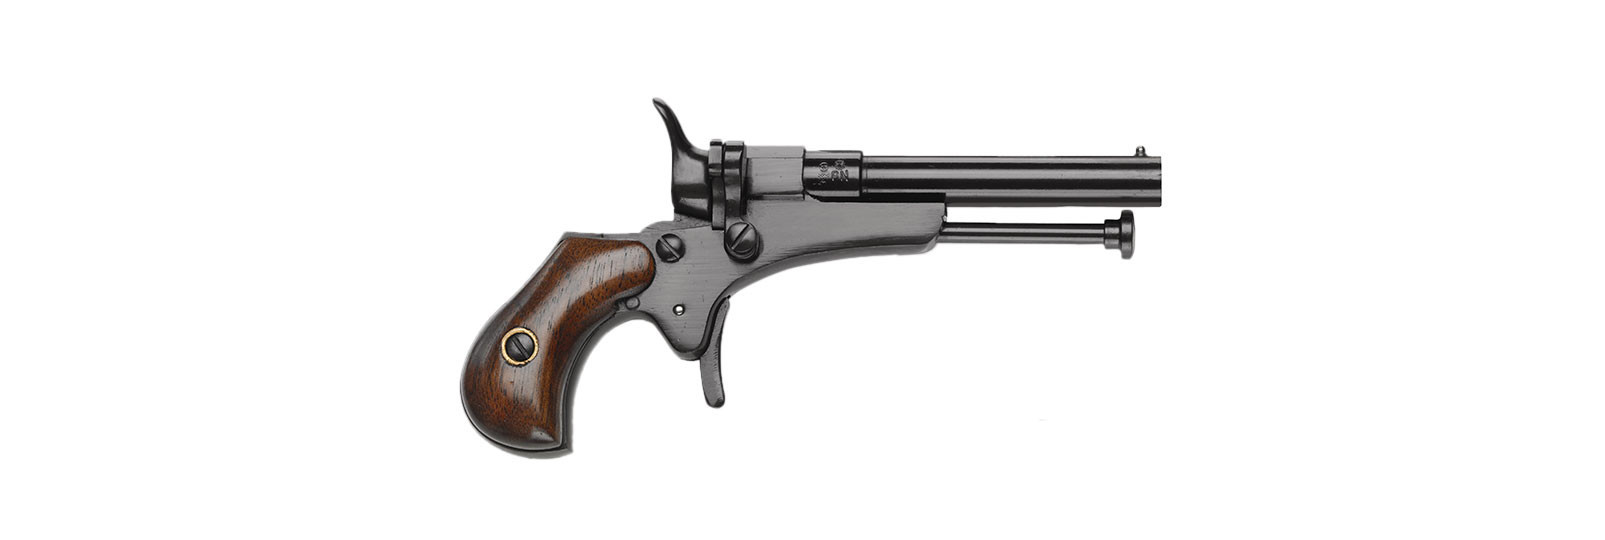 Derringer Guardian n.11 Pistol